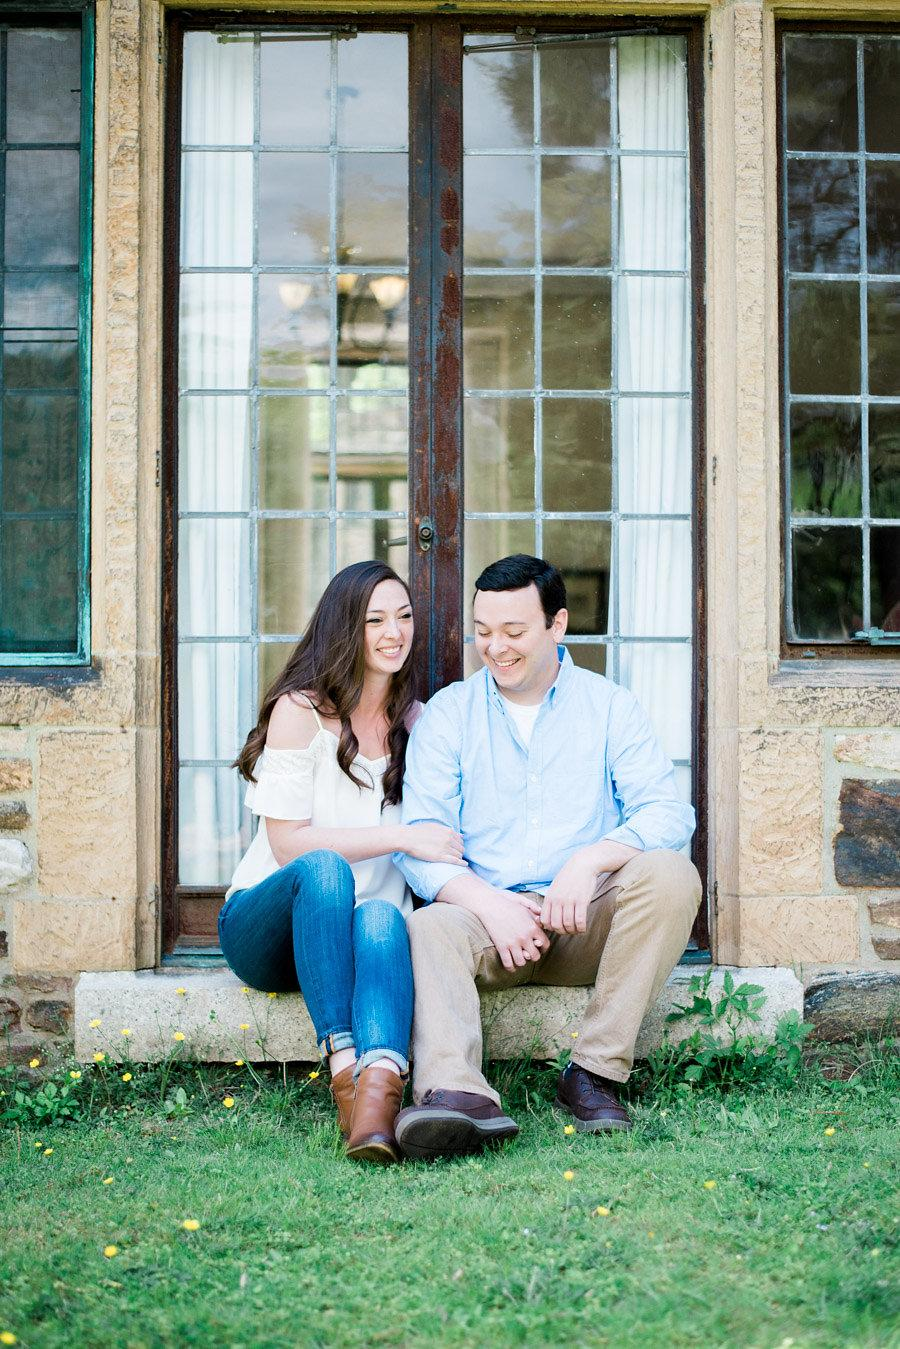 emcee_studio_photographie_engagement_photography_bride_groom_emily_jack_march_2016-2